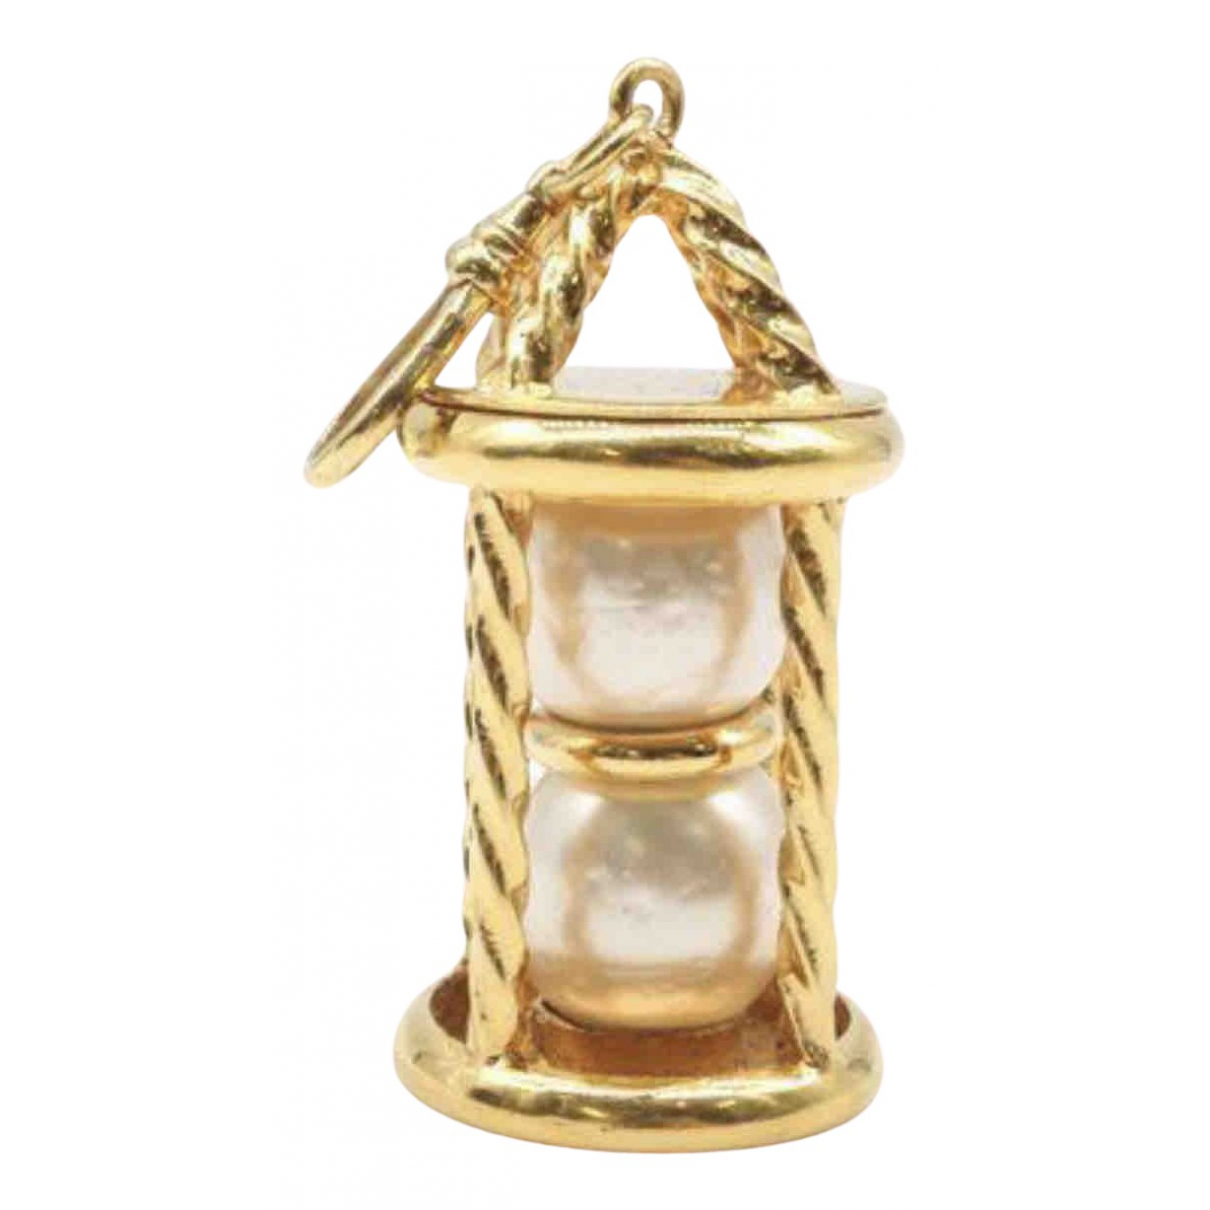 Chanel \N Gold Metal necklace for Women \N